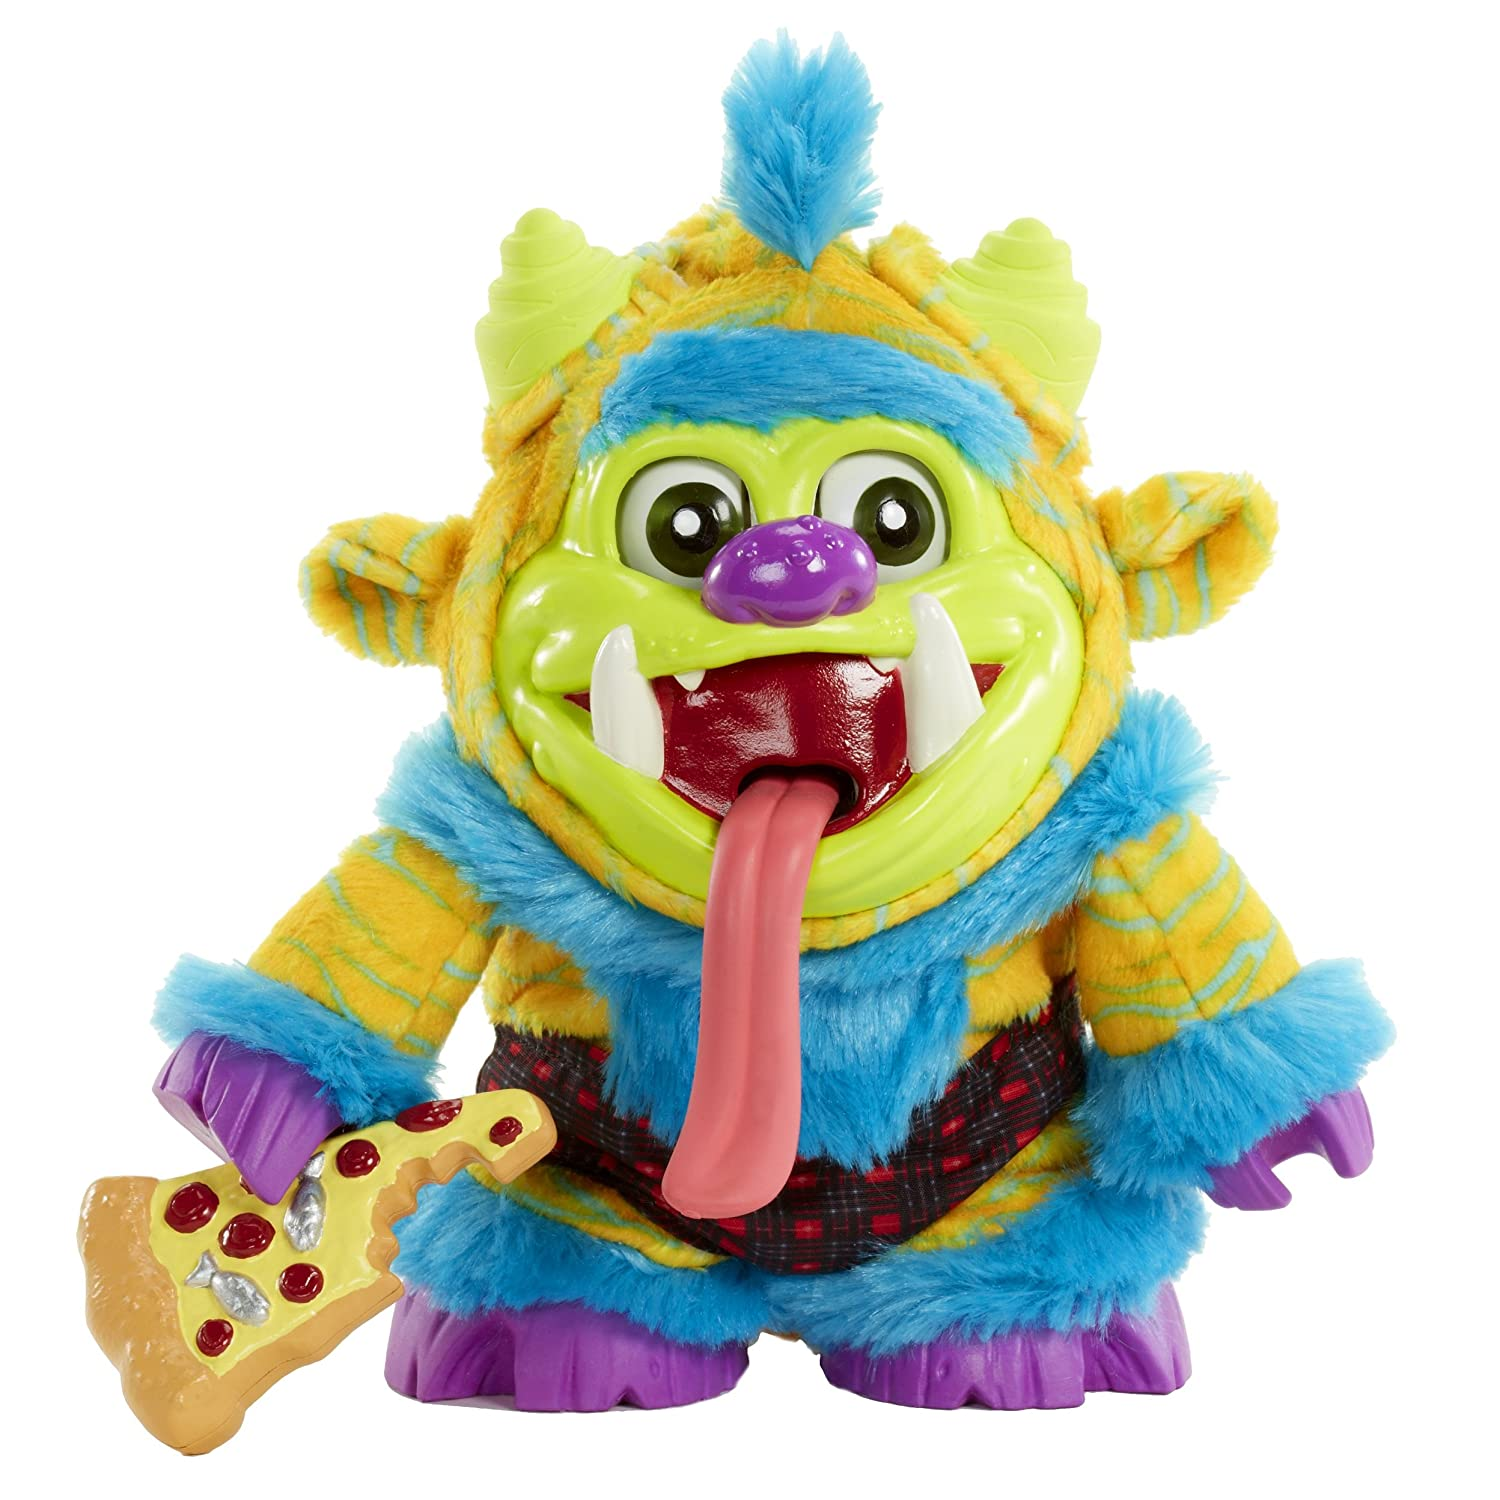 Crate Creatures Surprise-Pudge Interactive Plush MGA Entertainment 549239